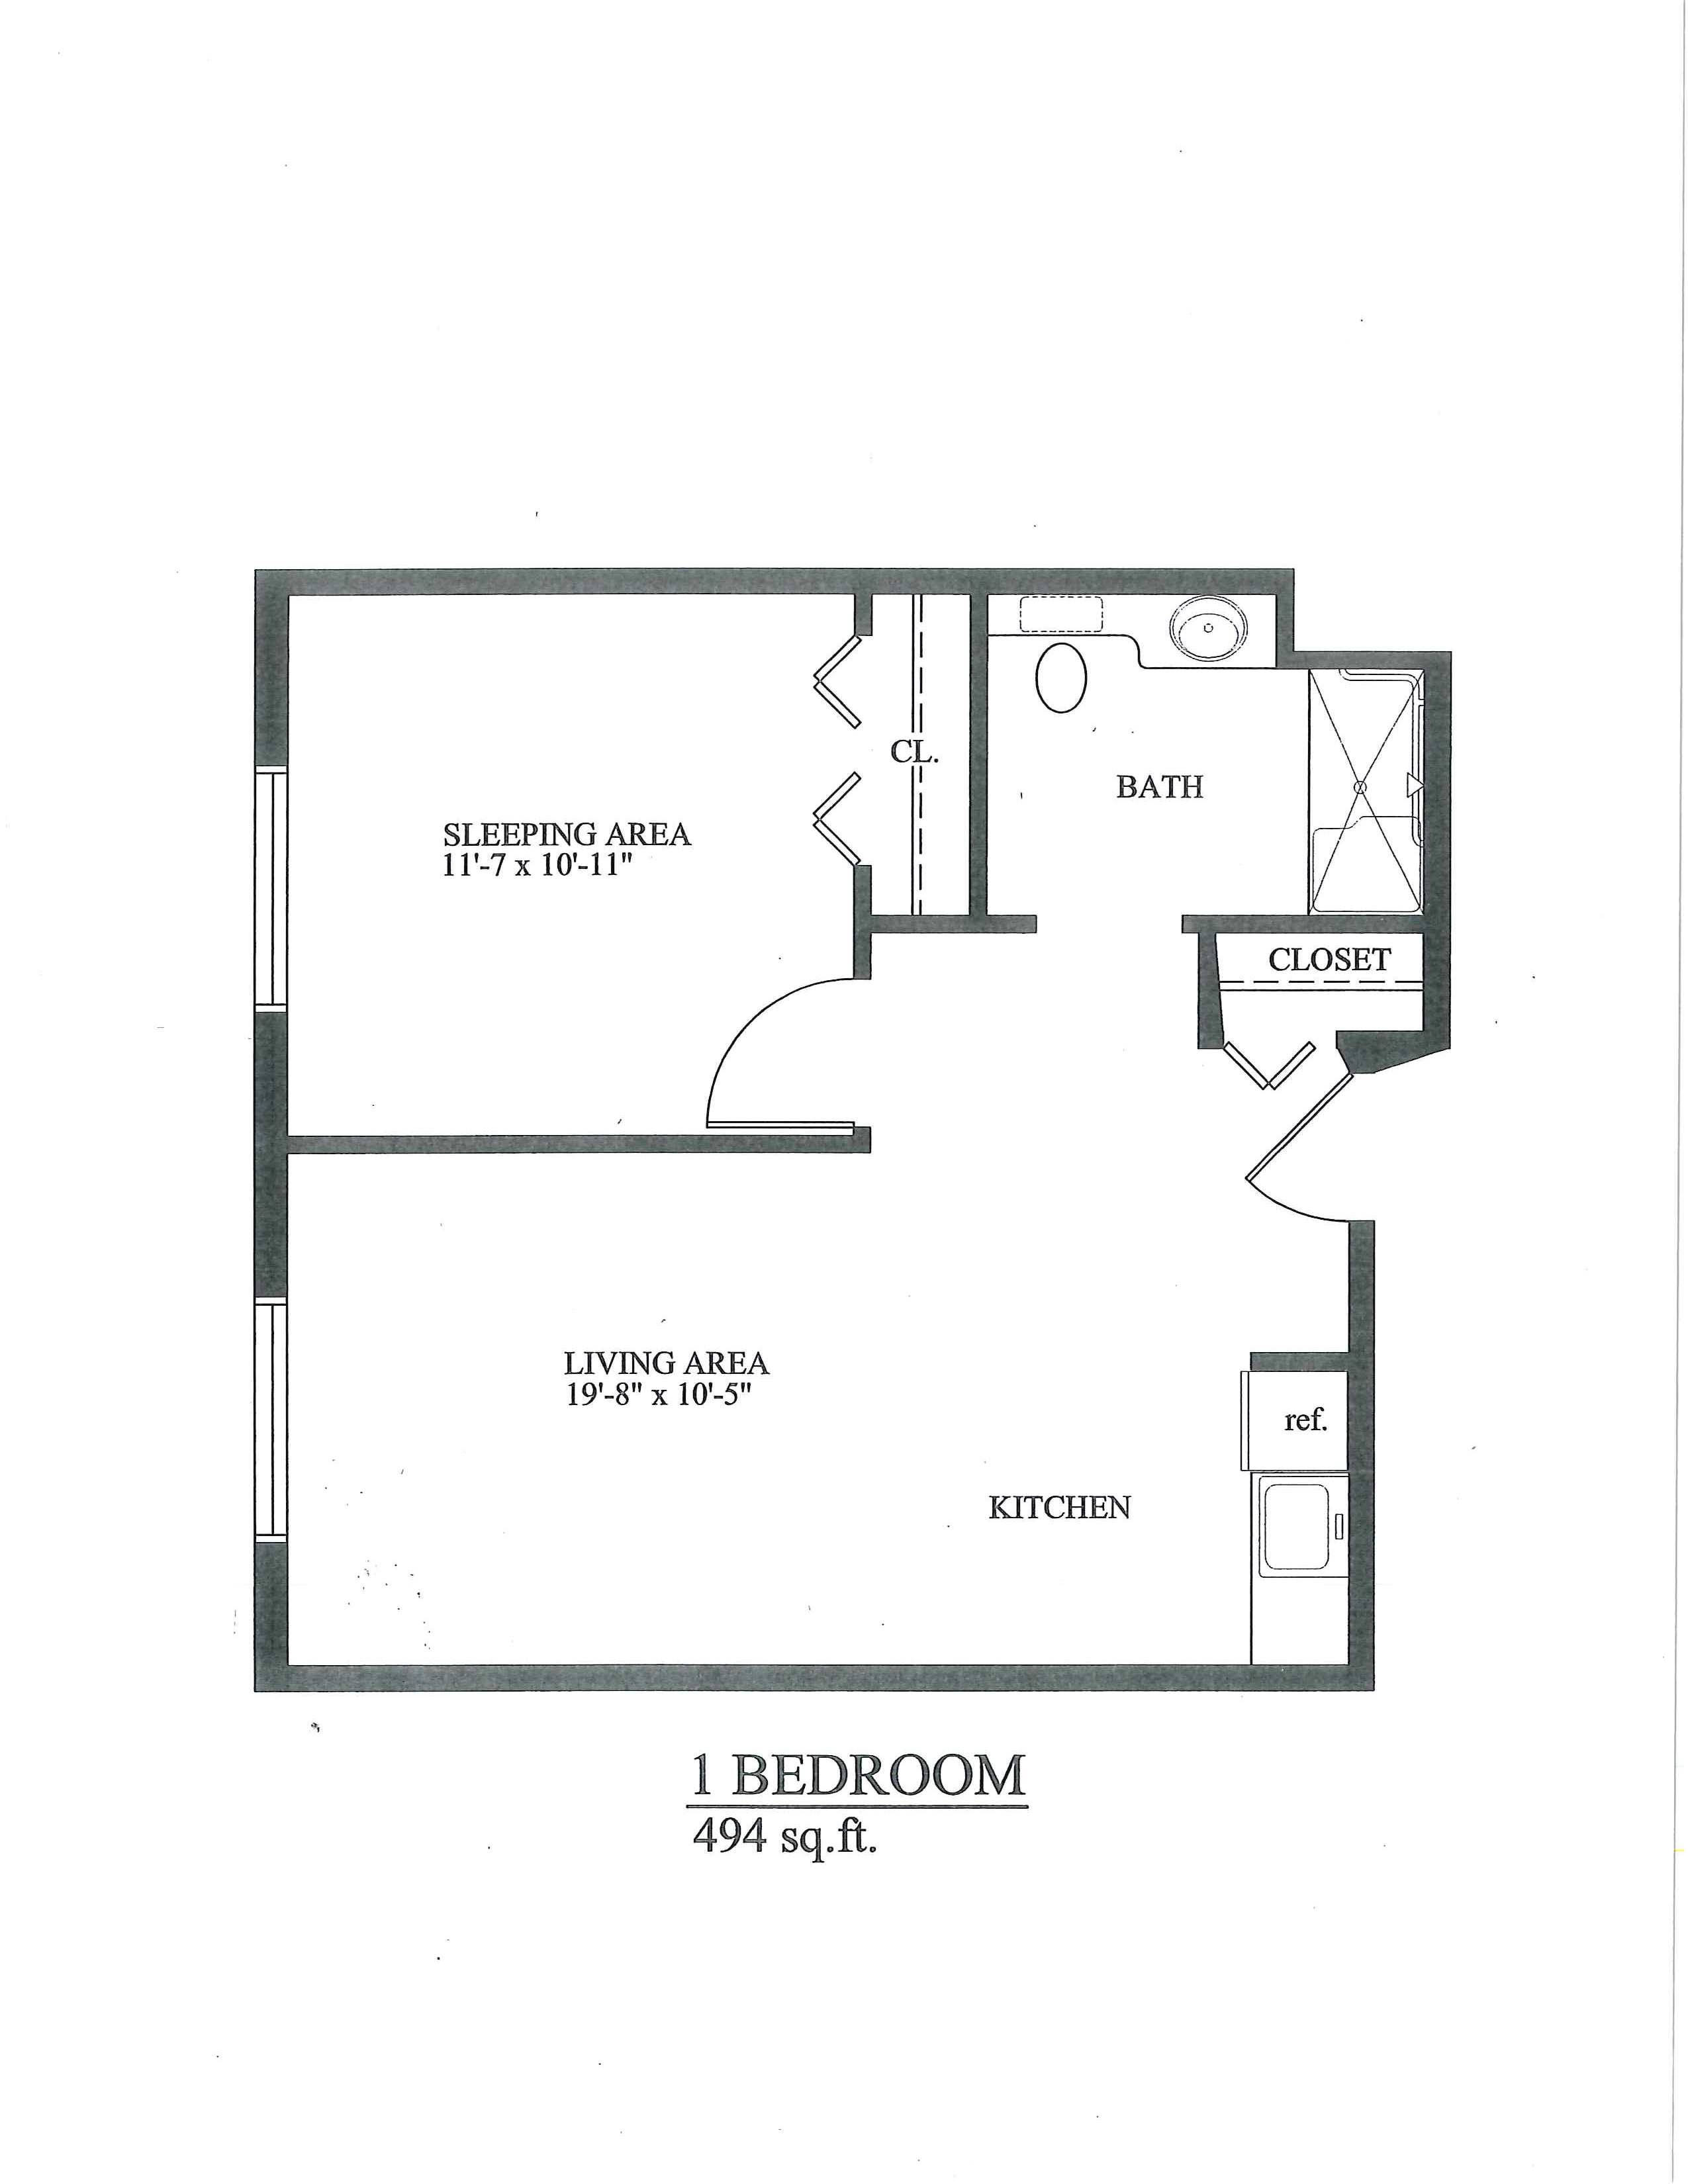 Floor Plans - A Campus of Personalized Care and Enriched Living